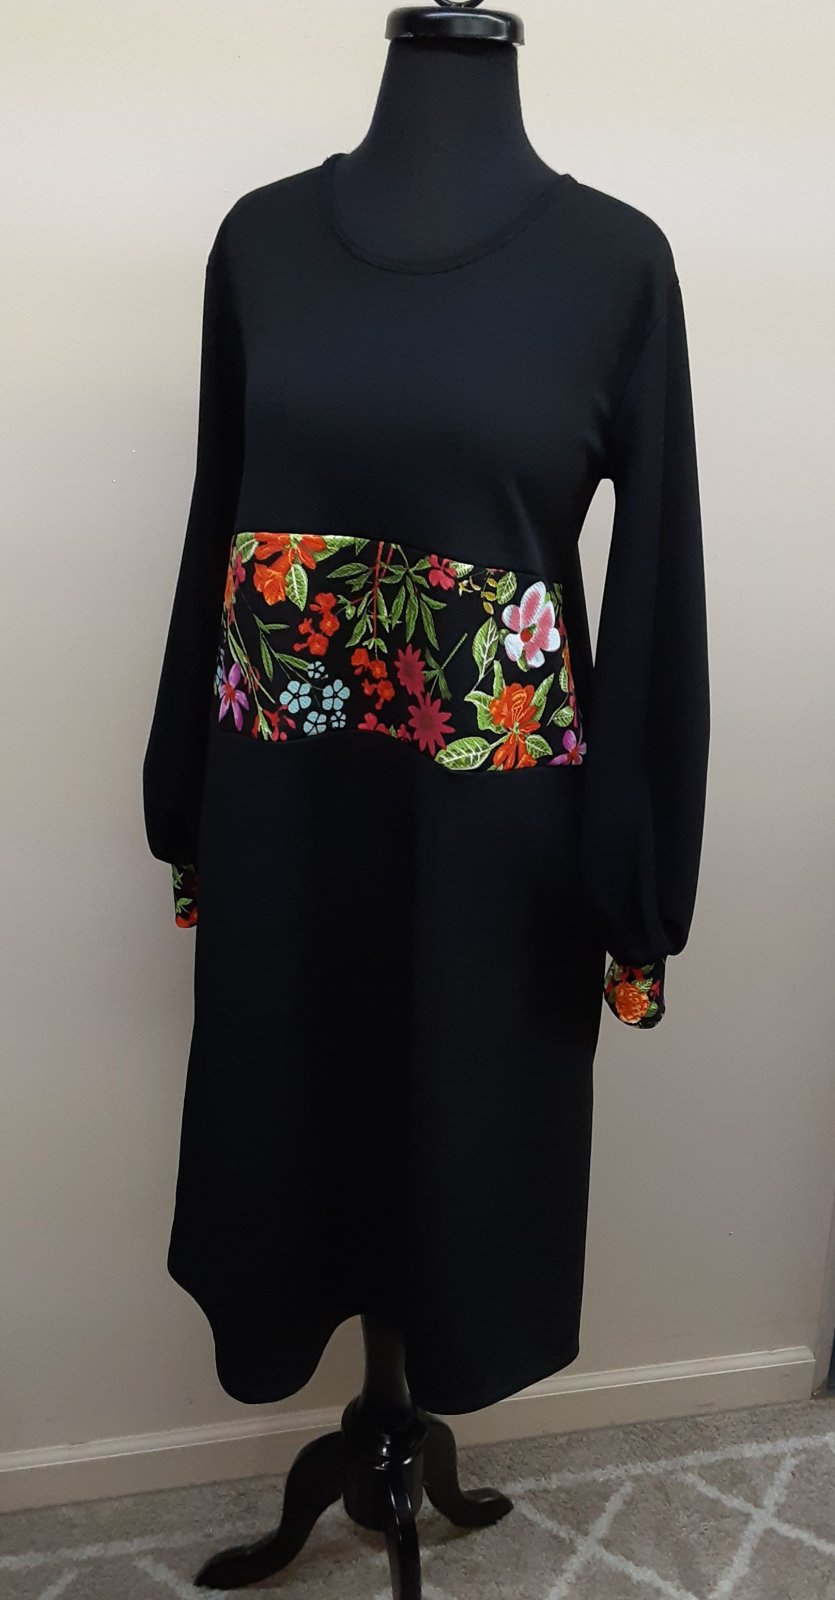 Black and Floral Midi Dress, Shane Lee